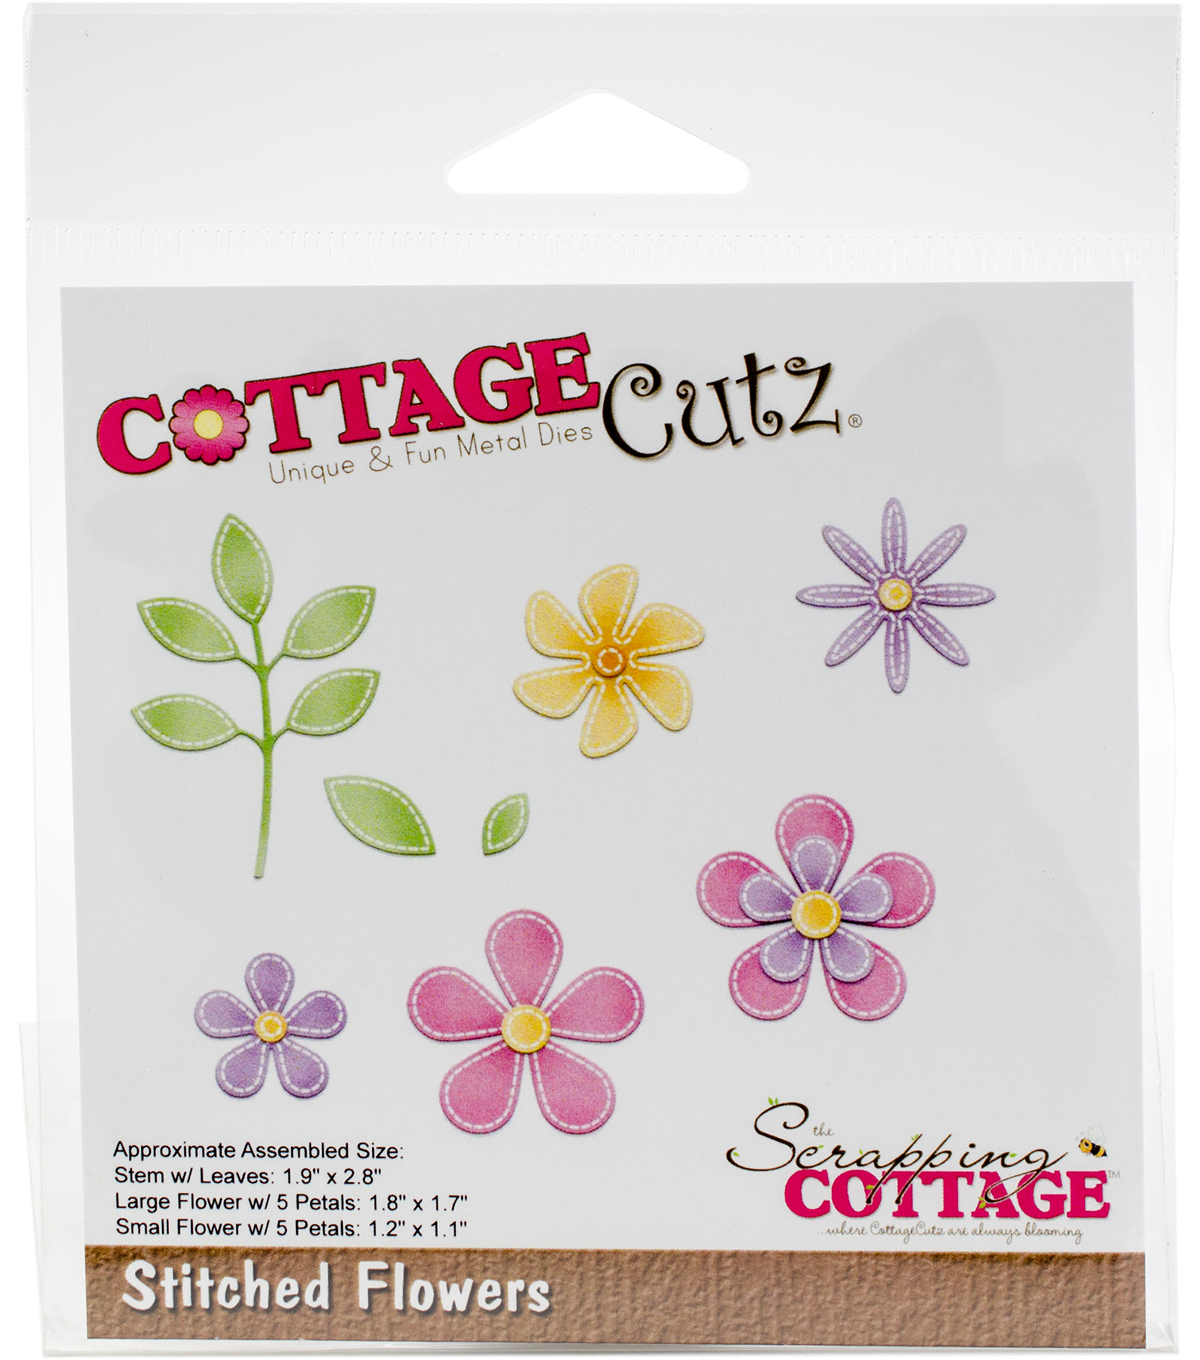 The Scrapping Cottage CottageCutz Dies-Stitched Flowers